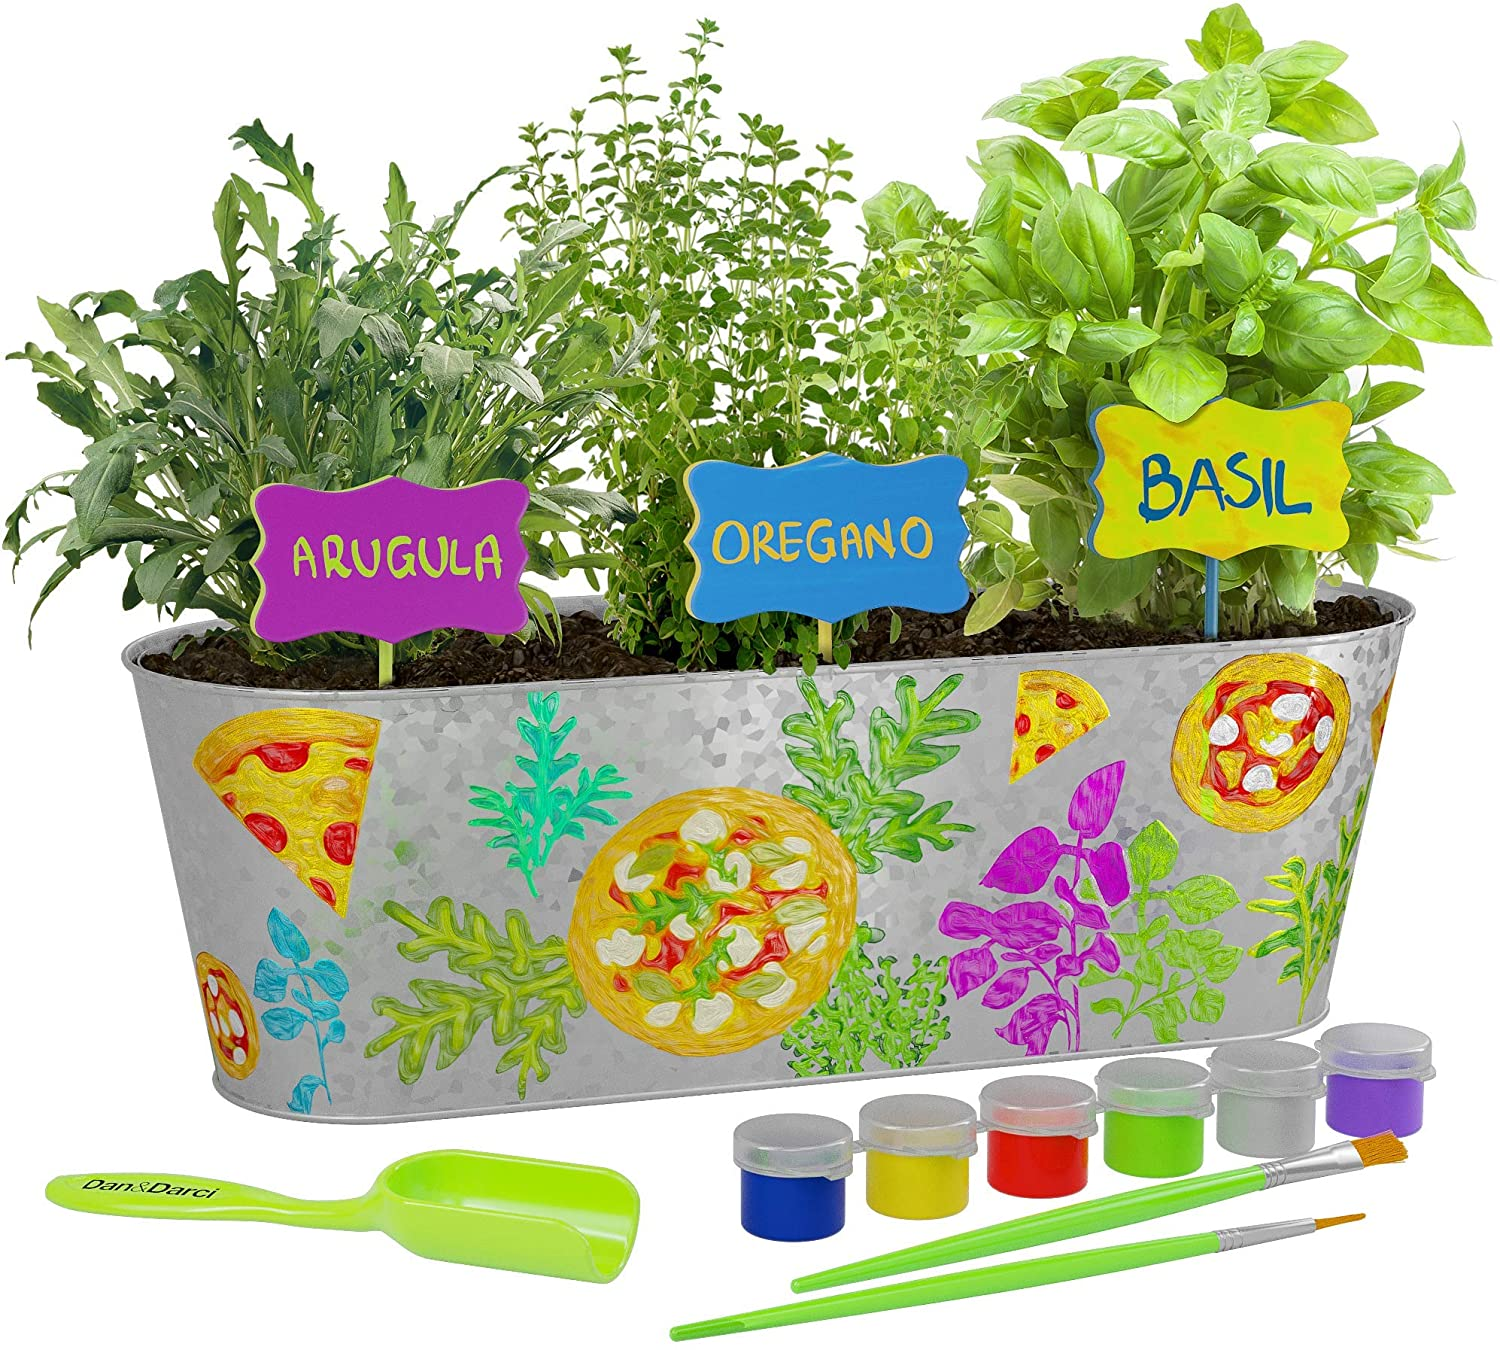 Kid Friendly Painted Herb Gardening KitKit